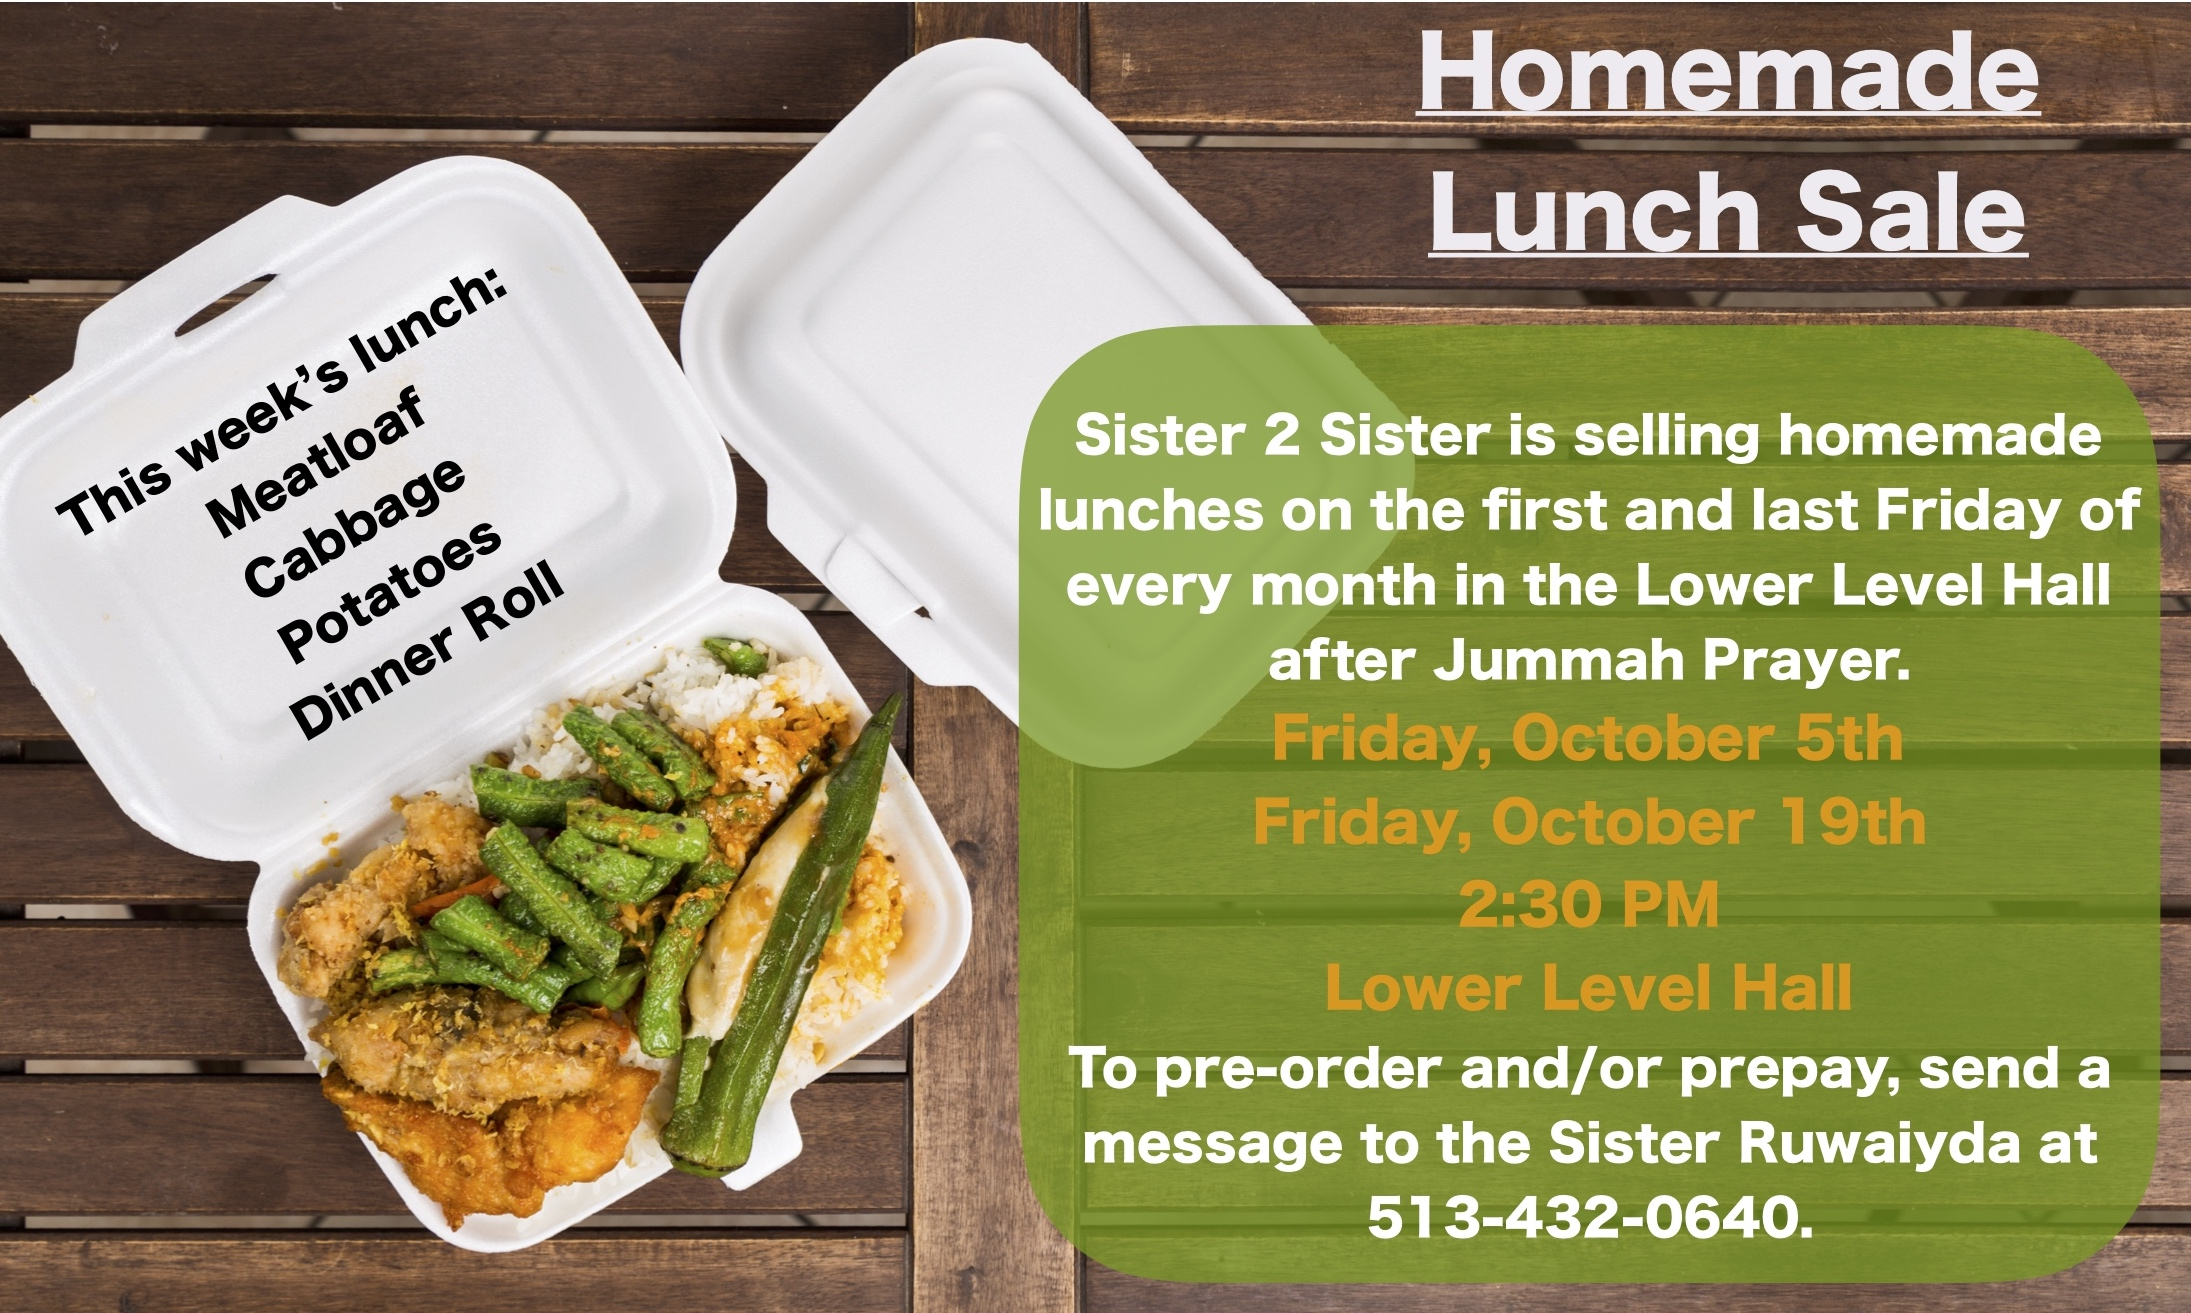 Sister 2 Sister is selling homemade lunches after Jummah Prayer on October 5th and October 19th. Proceeds go to help those in need in our community.